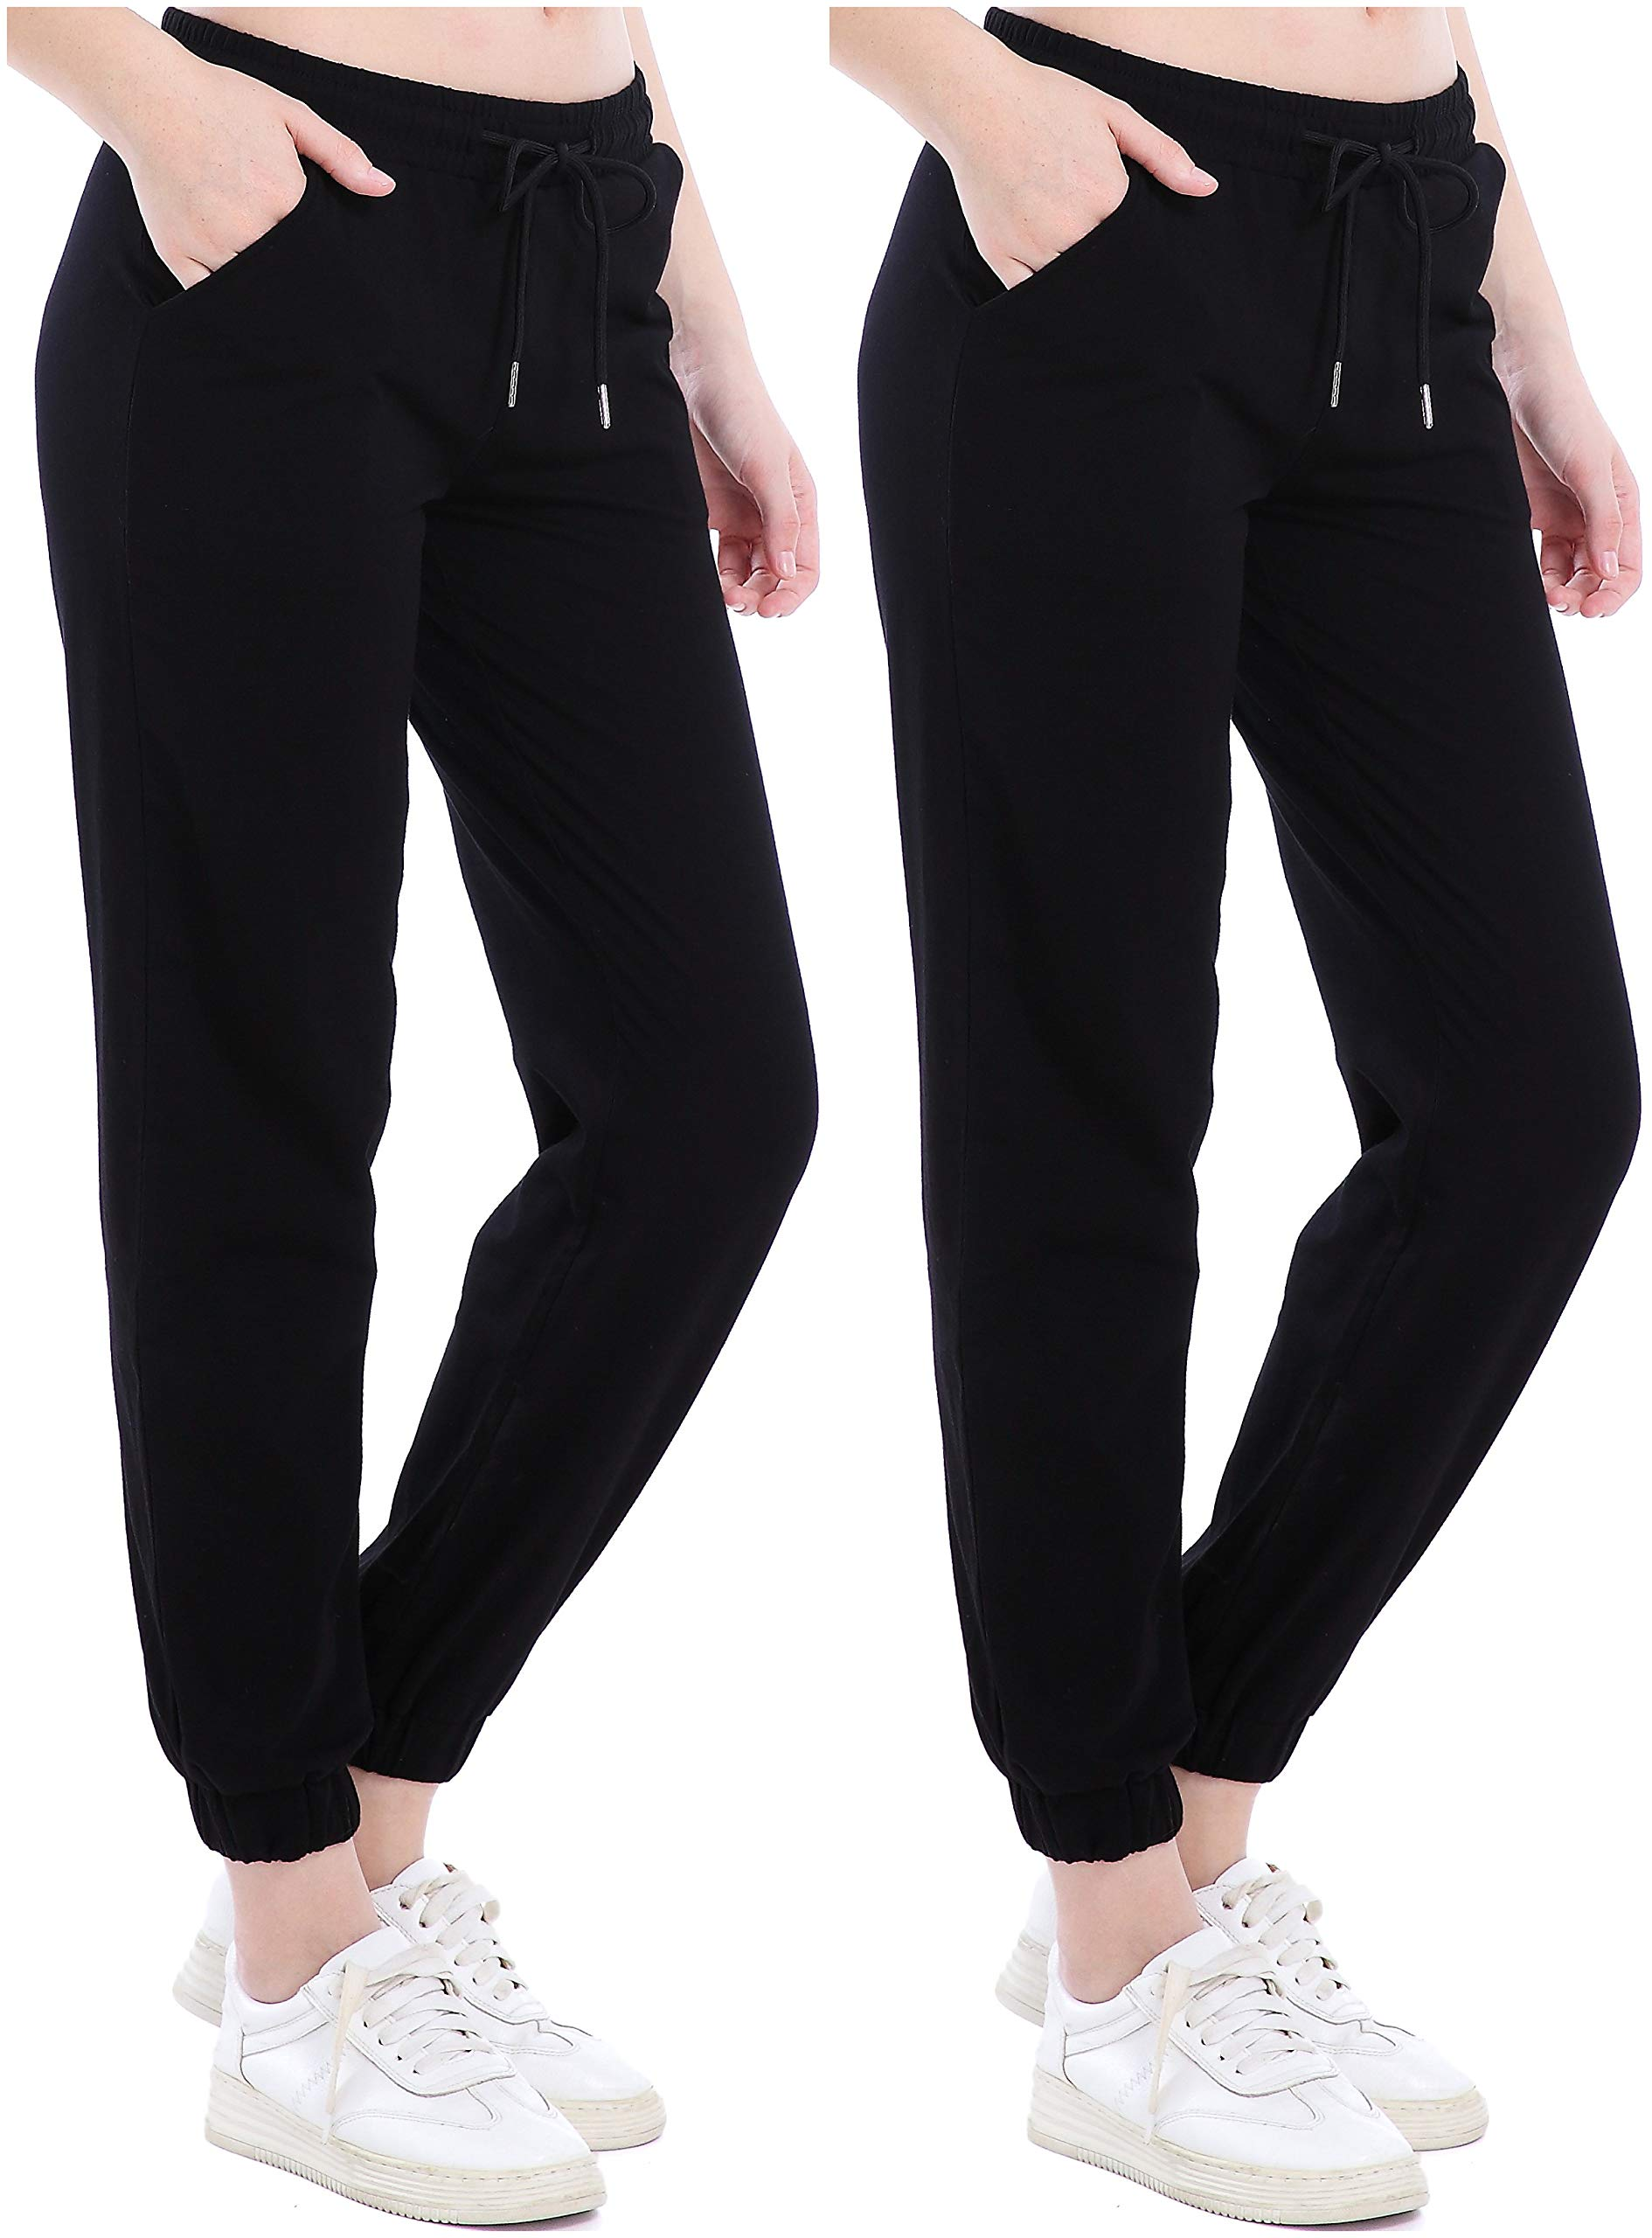 Ferrieswheel Story Thin Stretch Jogger Pants Fitness Light Cotton Sweatpants Women with Pockets